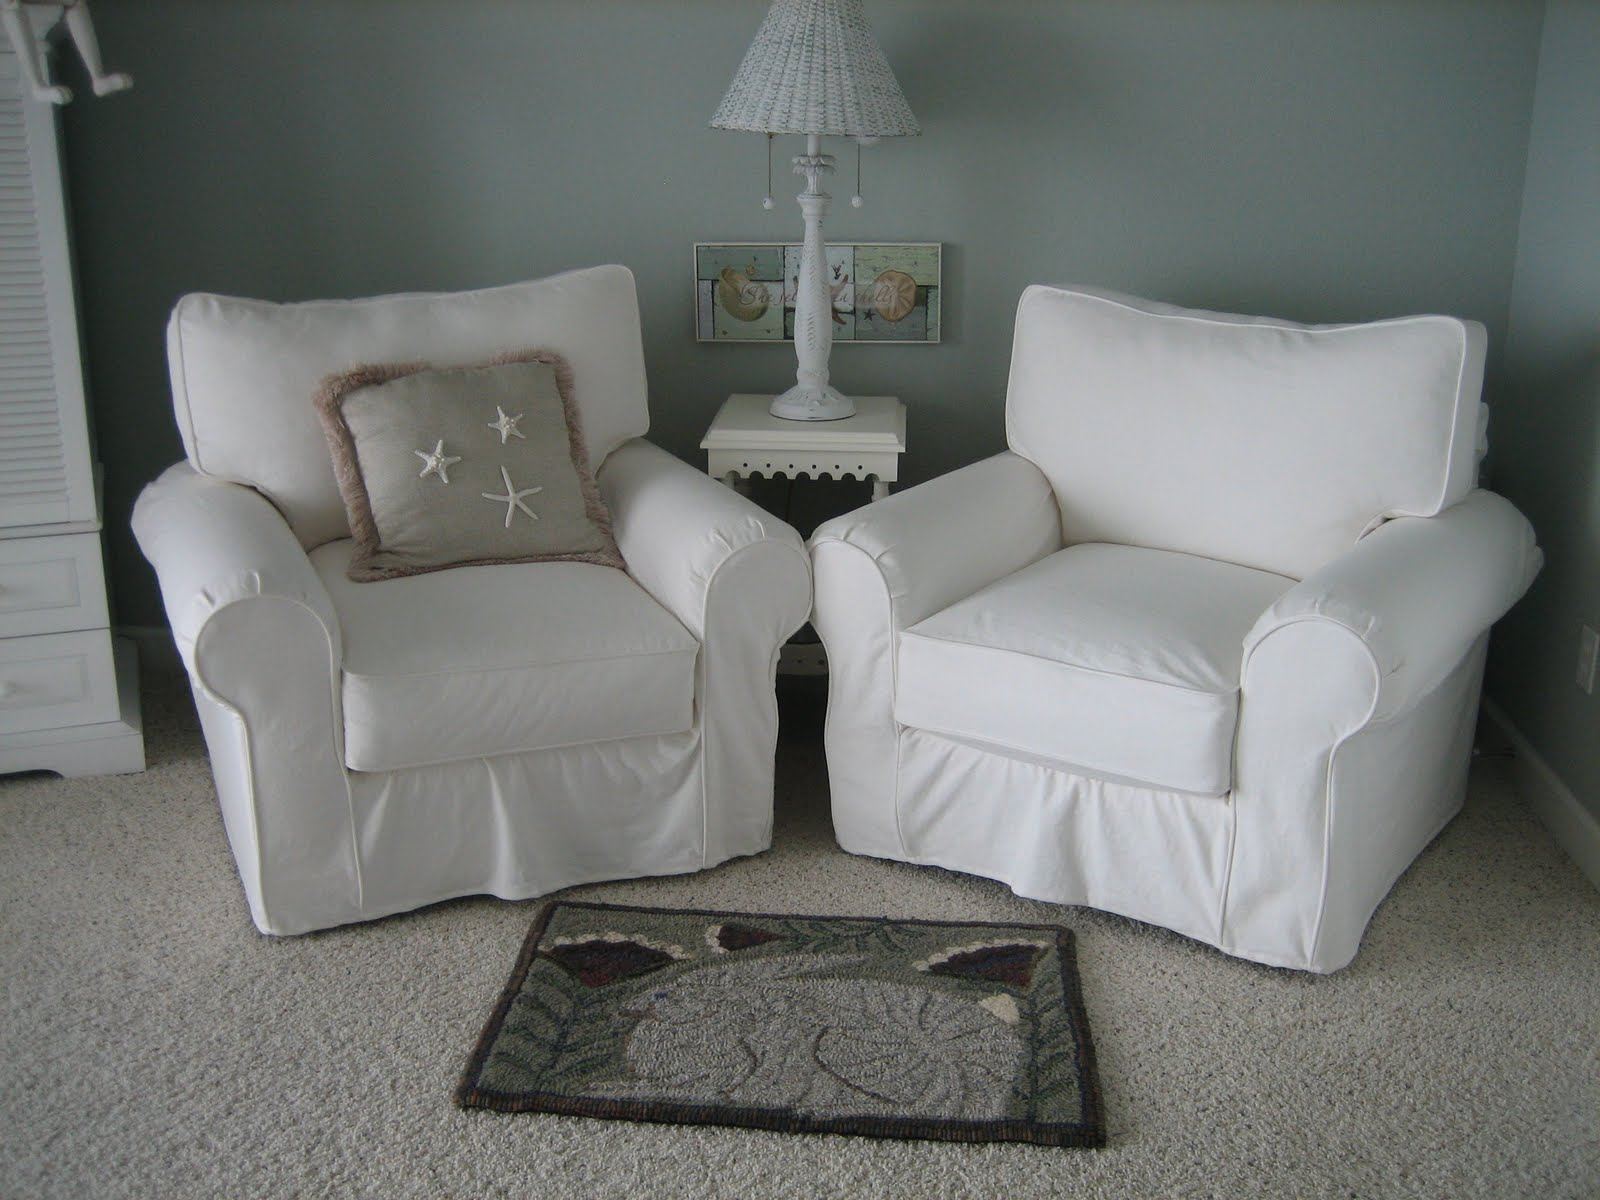 Comfy Chairs for Your Bedroom